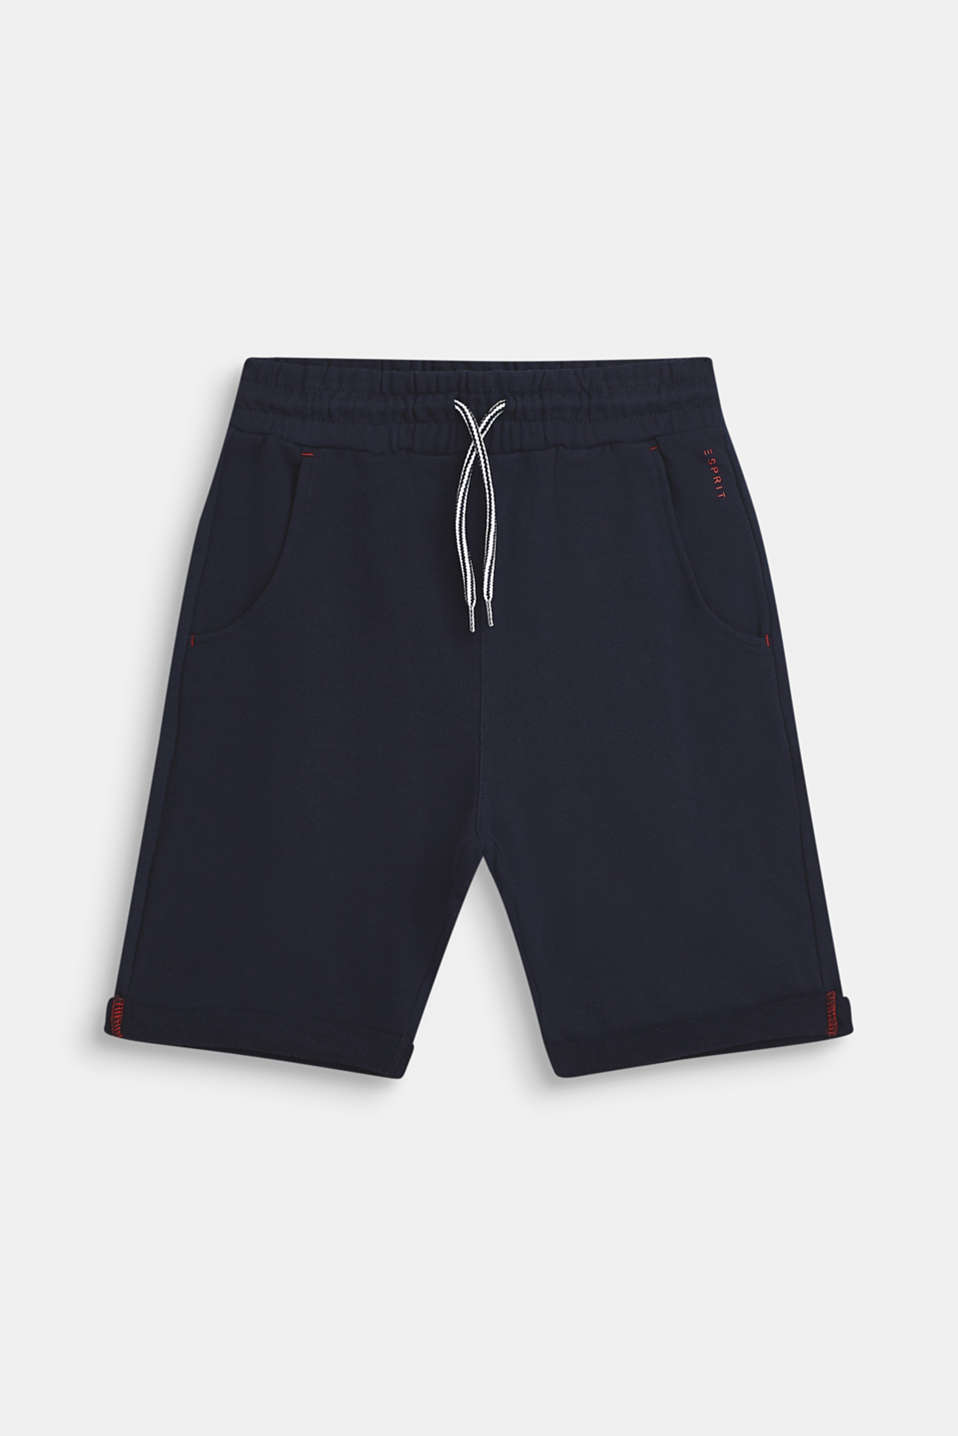 Esprit - Sweatshirt shorts in 100% cotton